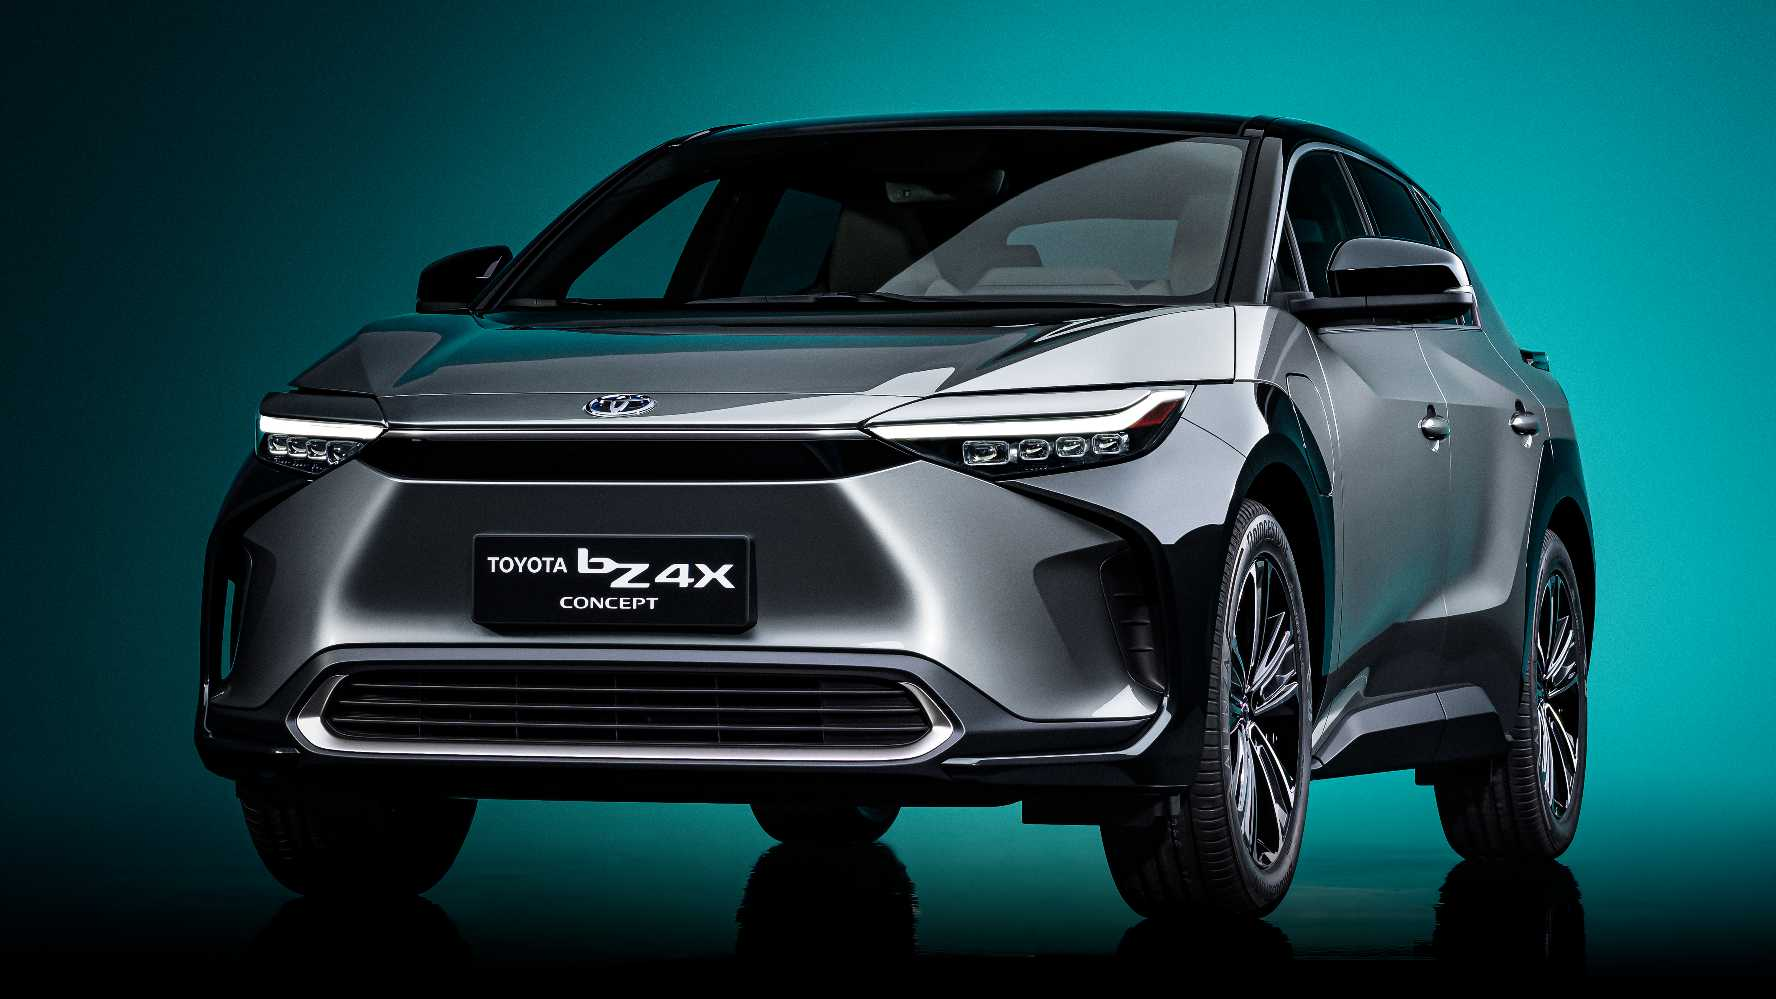 Toyota's first global BEV, the bZ4x SUV, is only set to enter production by 2022. Image: Toyota